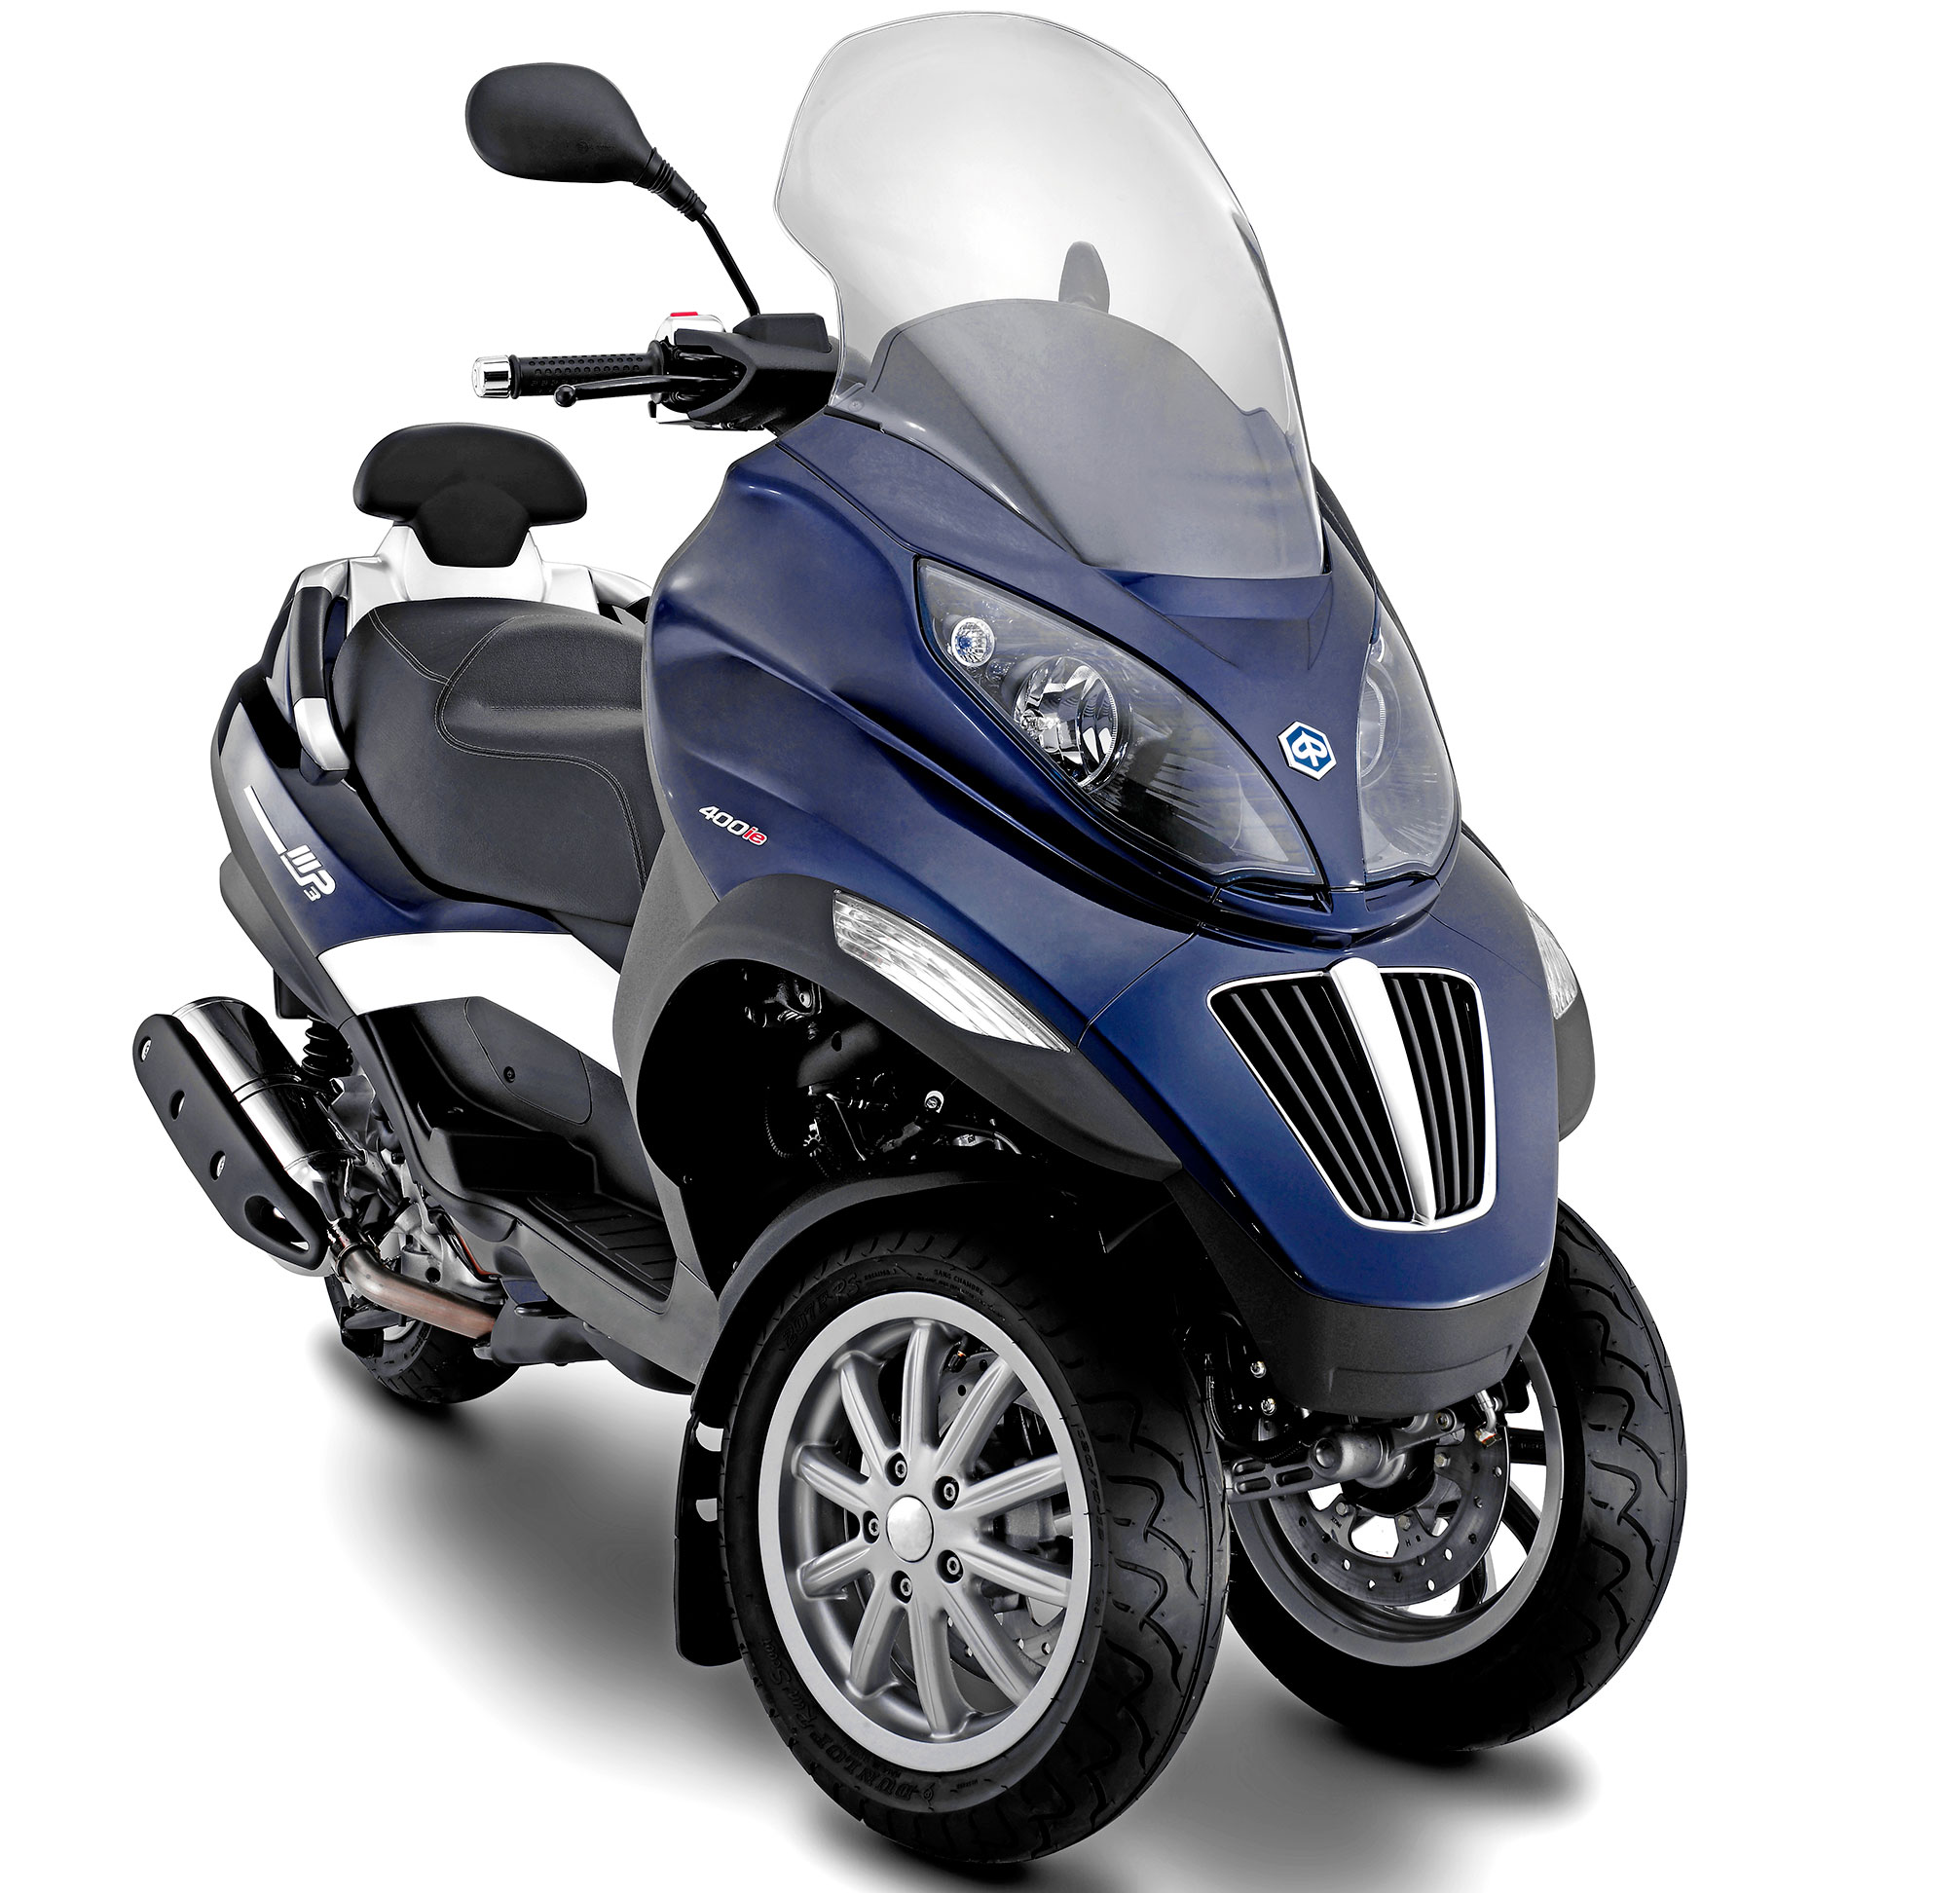 2014 piaggio mp3 400 review. Black Bedroom Furniture Sets. Home Design Ideas